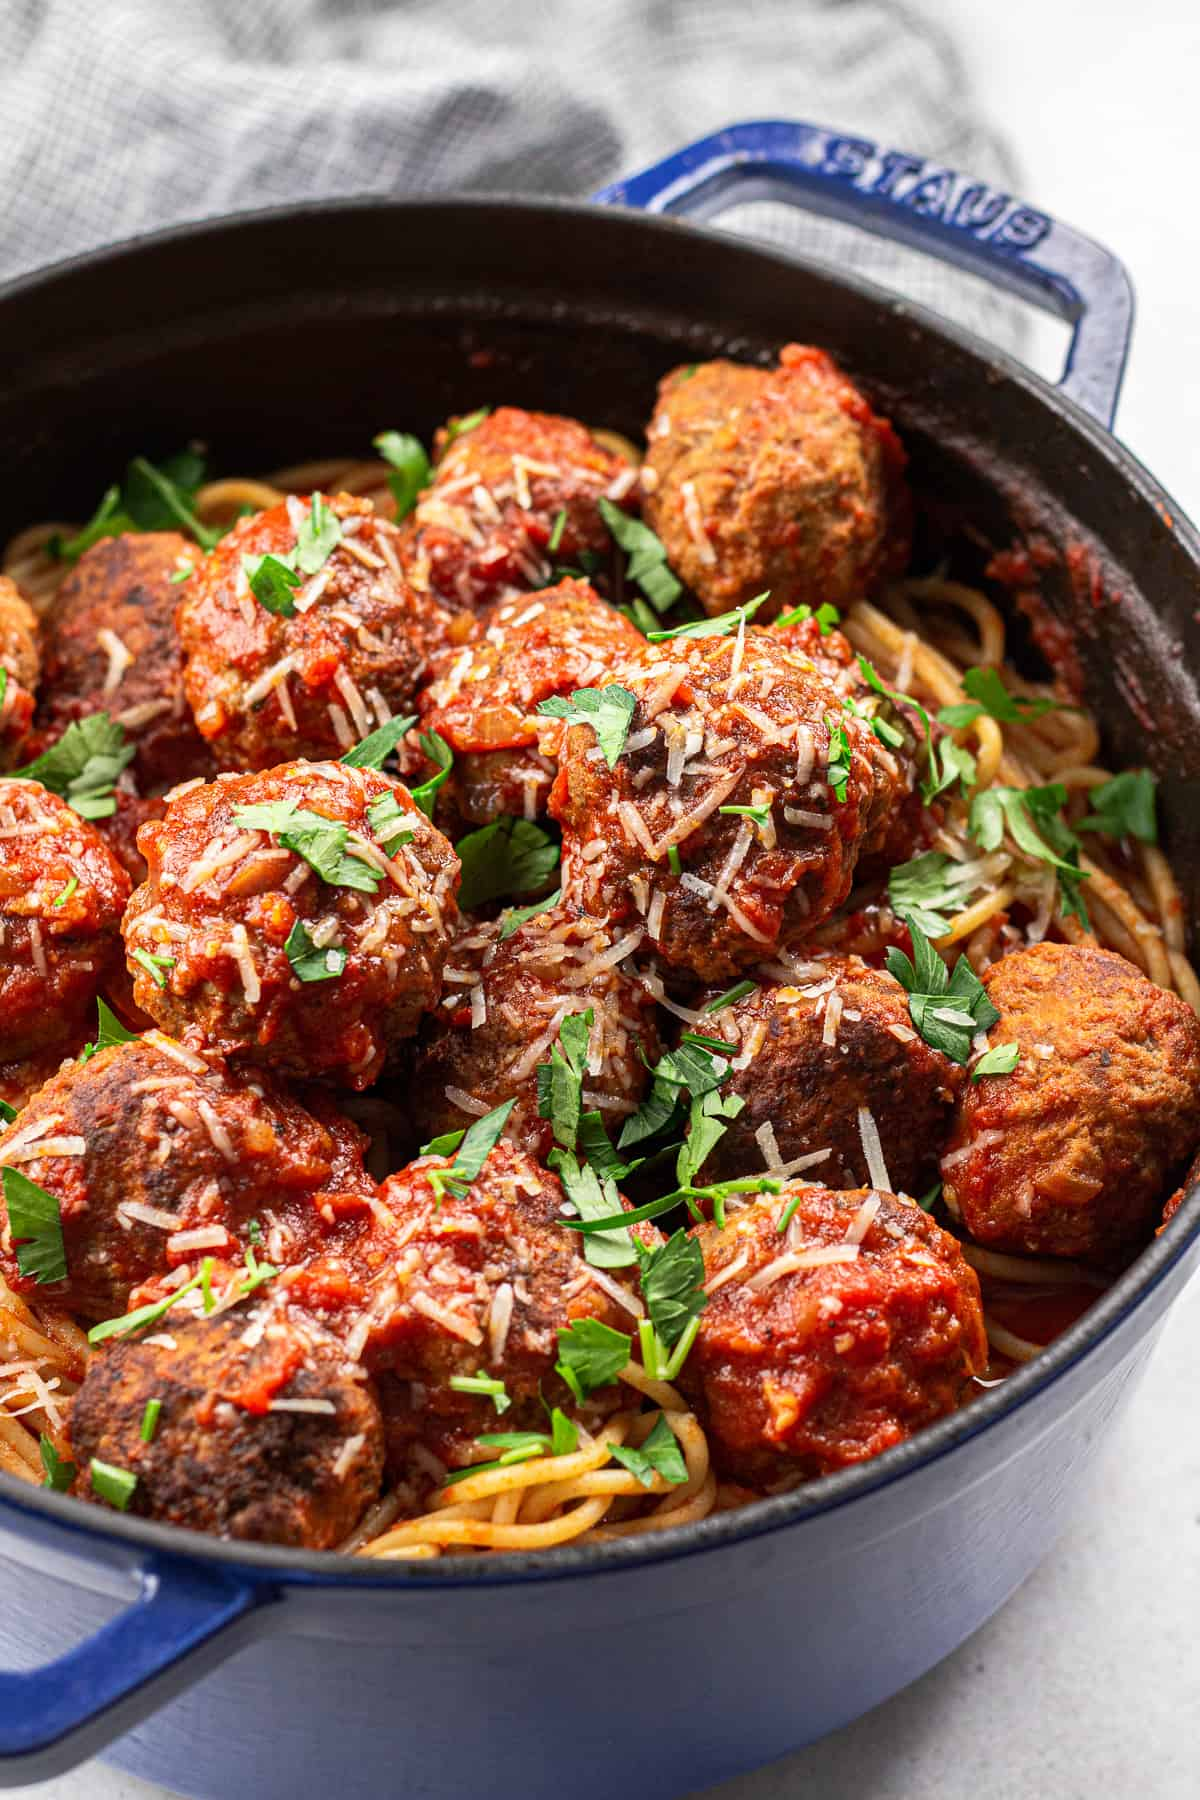 Spaghetti with meatballs, topped with parmesan and chopped parsley, in Dutch Oven.